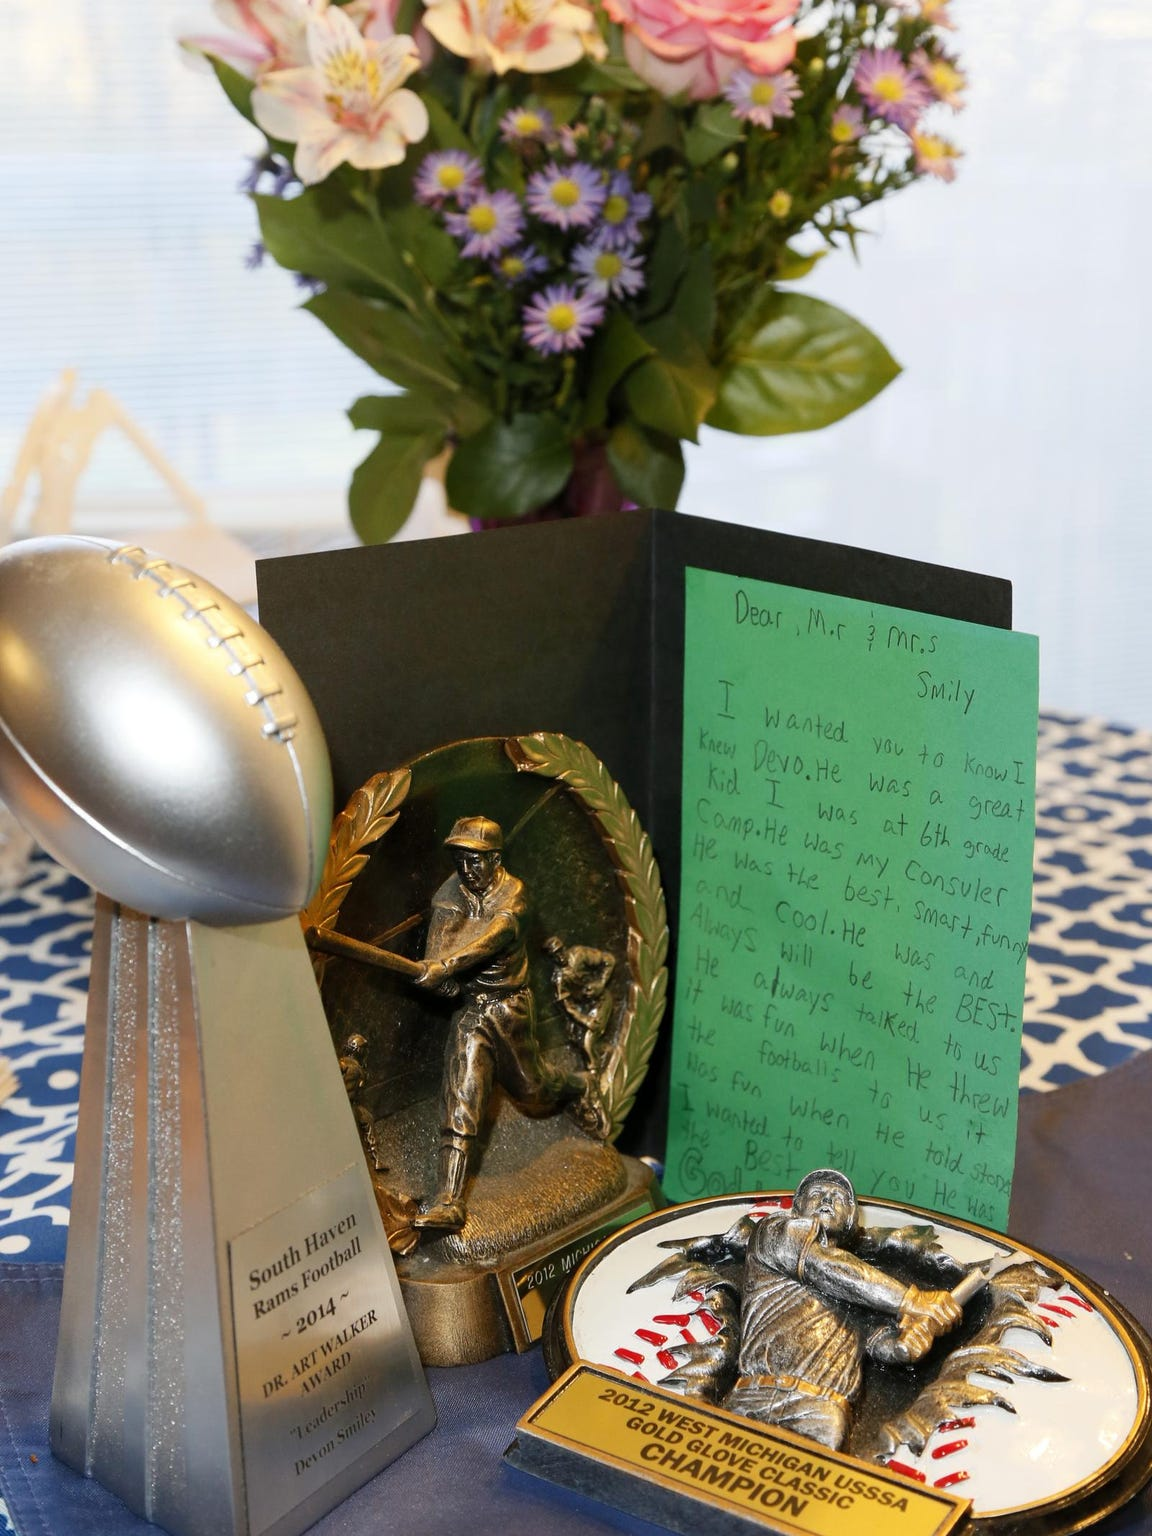 """Some of Devon Smiley's trophies and mementos. """"He is"""